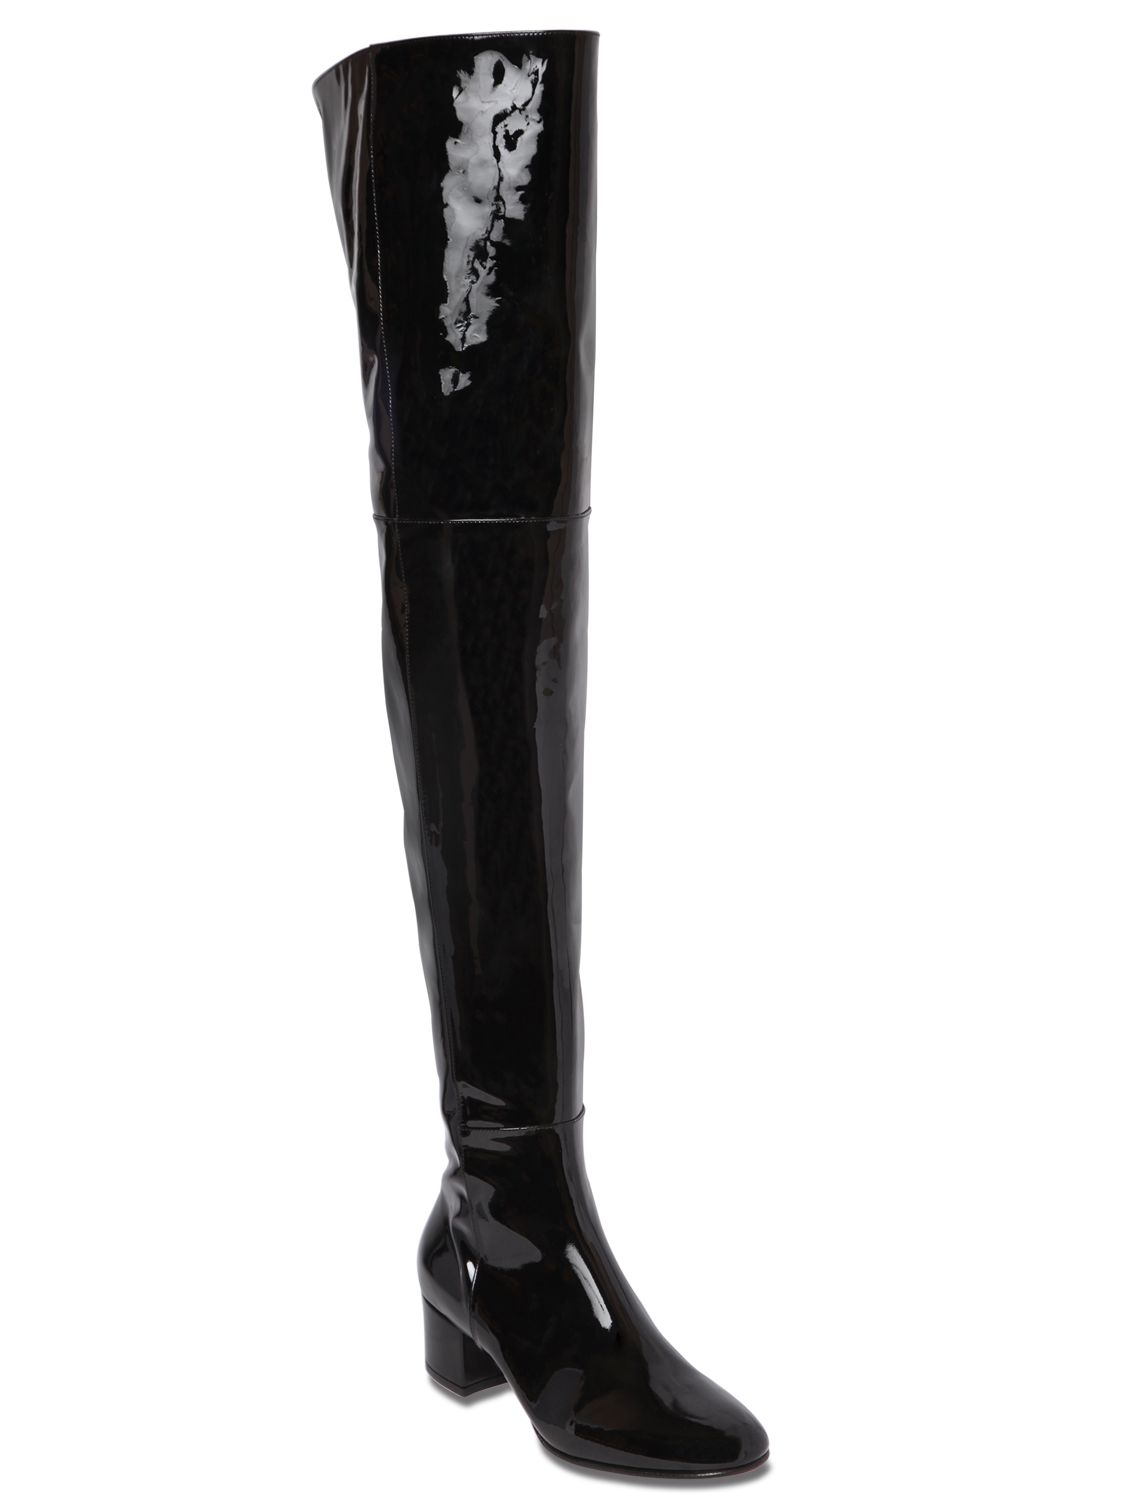 Gianvito rossi 45mm Patent Leather Over The Knee Boots in Black | Lyst